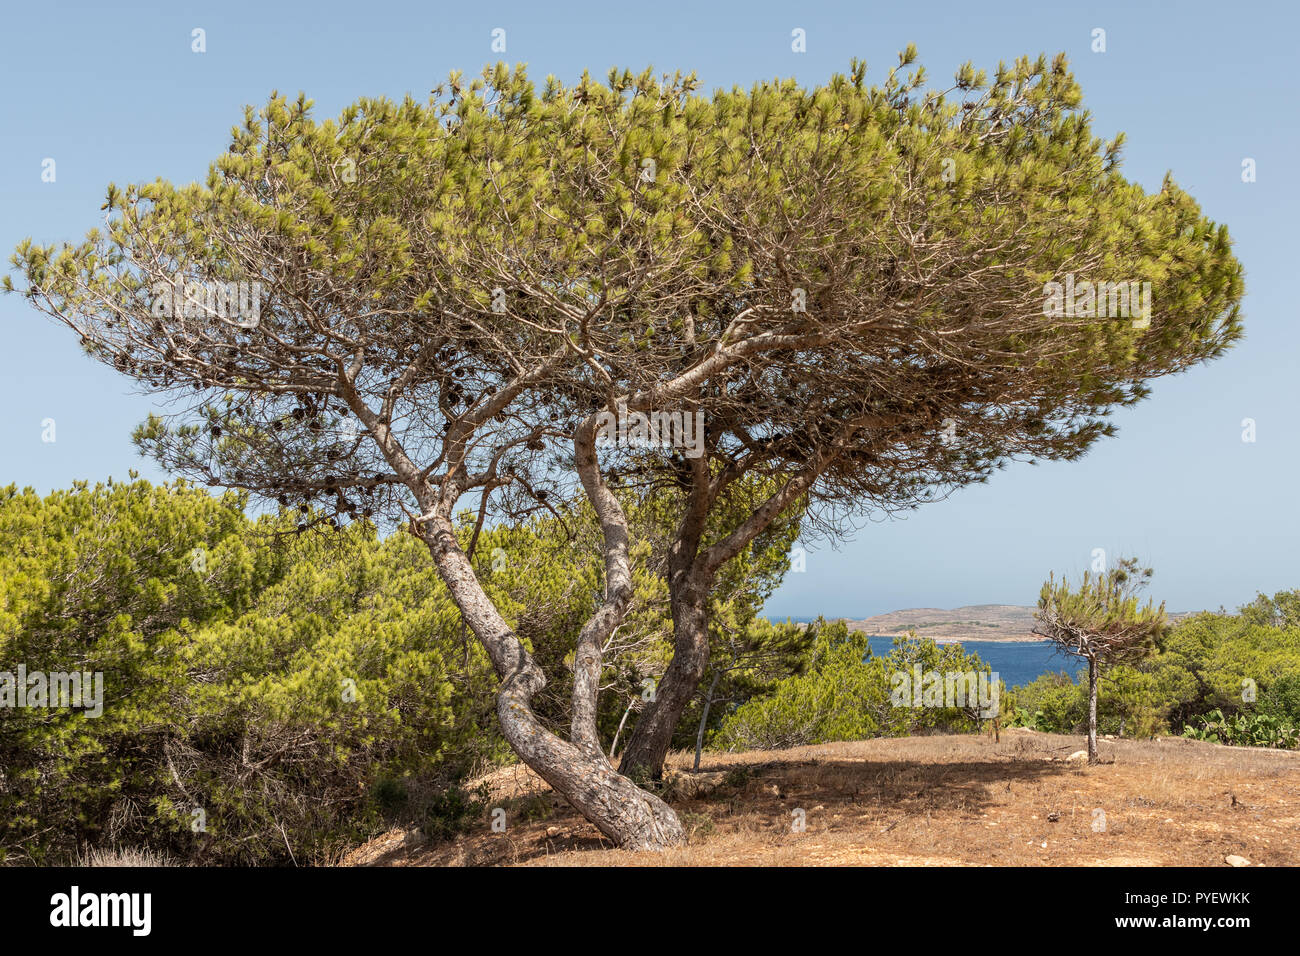 Pinus halepensis, Aleppo pine, evergreen tree. Horizontal. space for text. - Stock Image